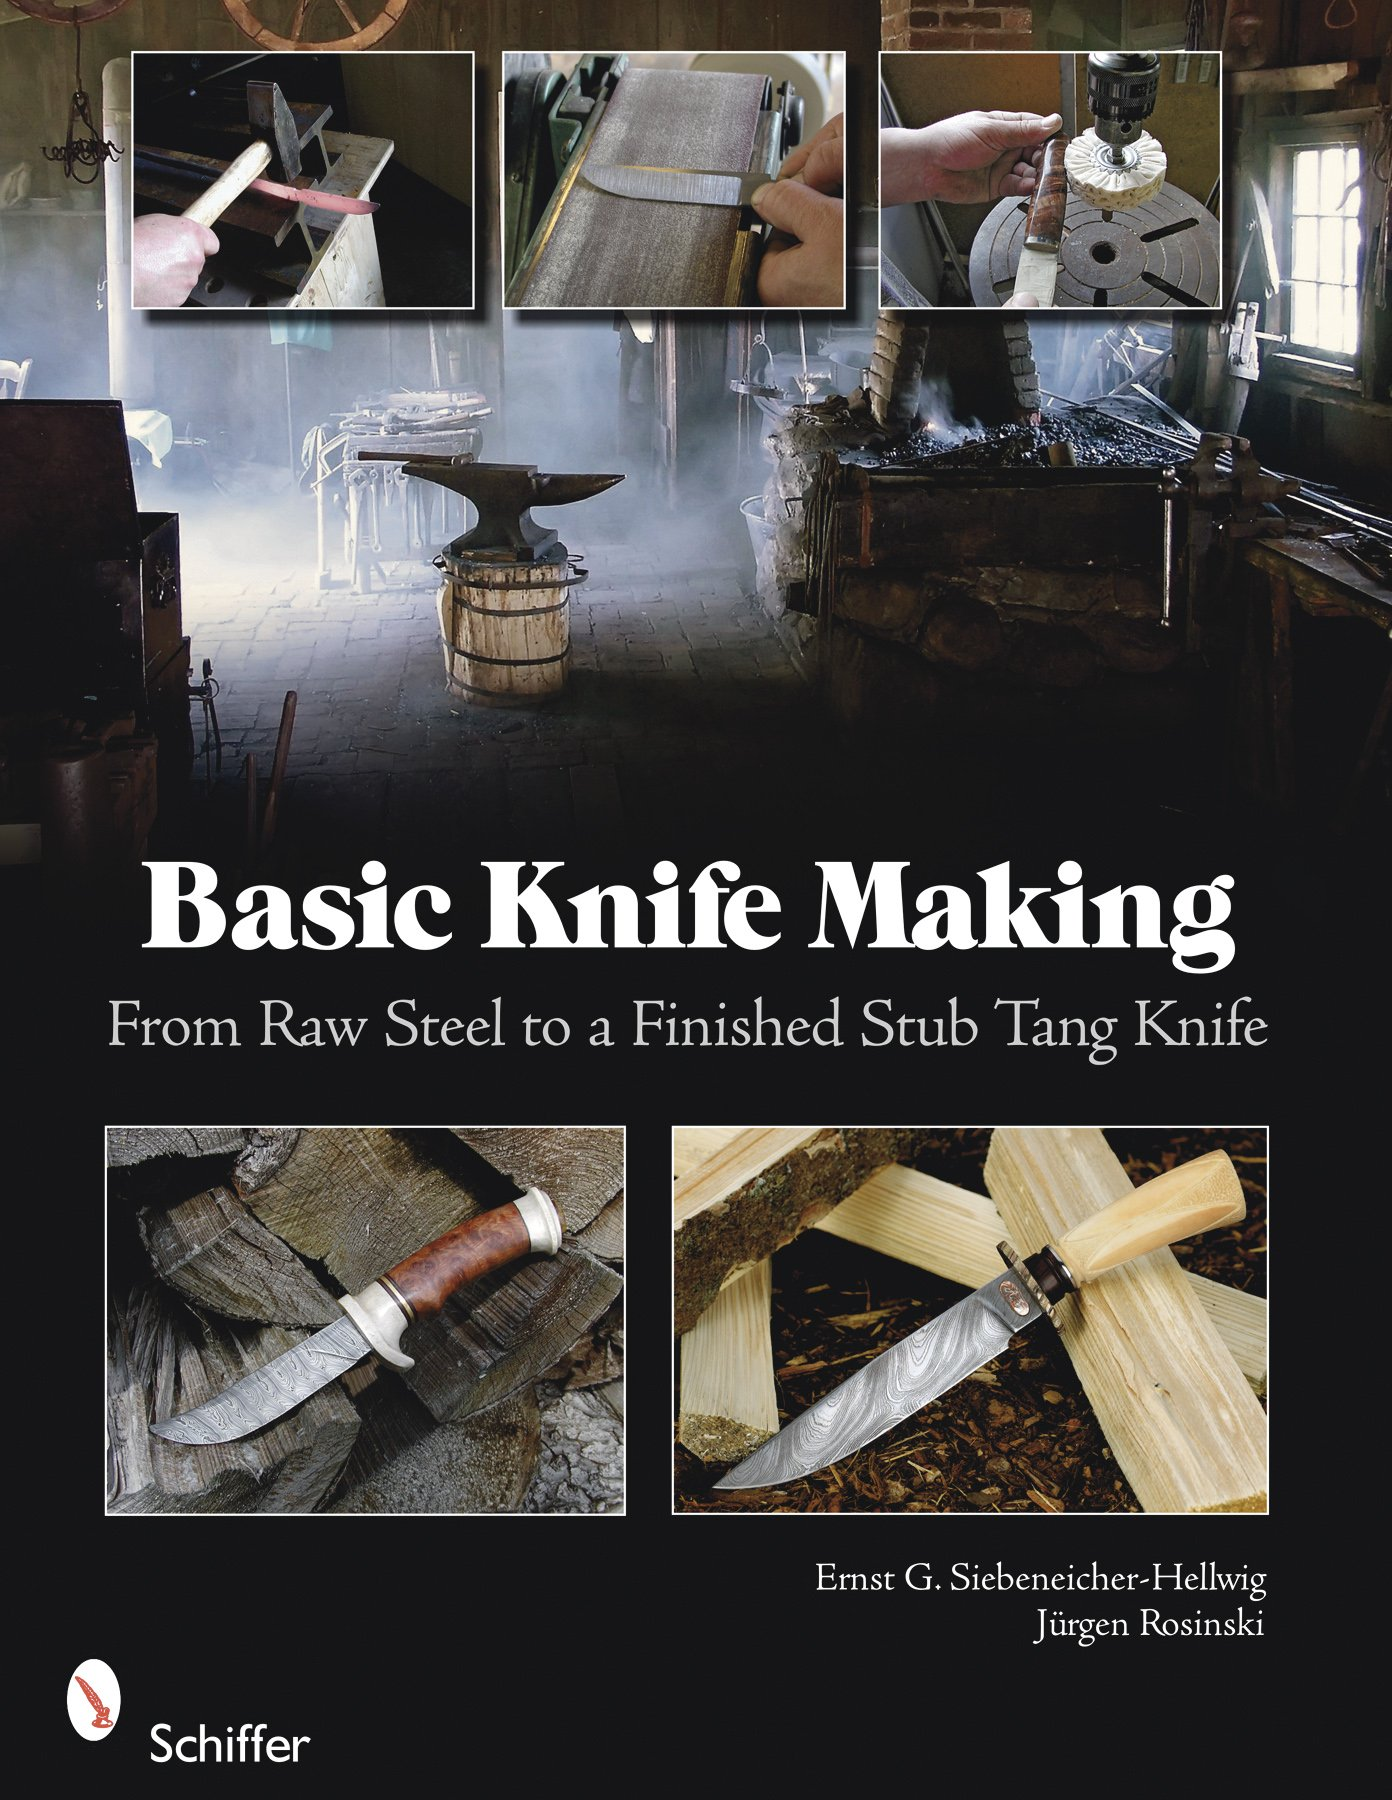 basic knife making from raw steel to a finished stub tang knife